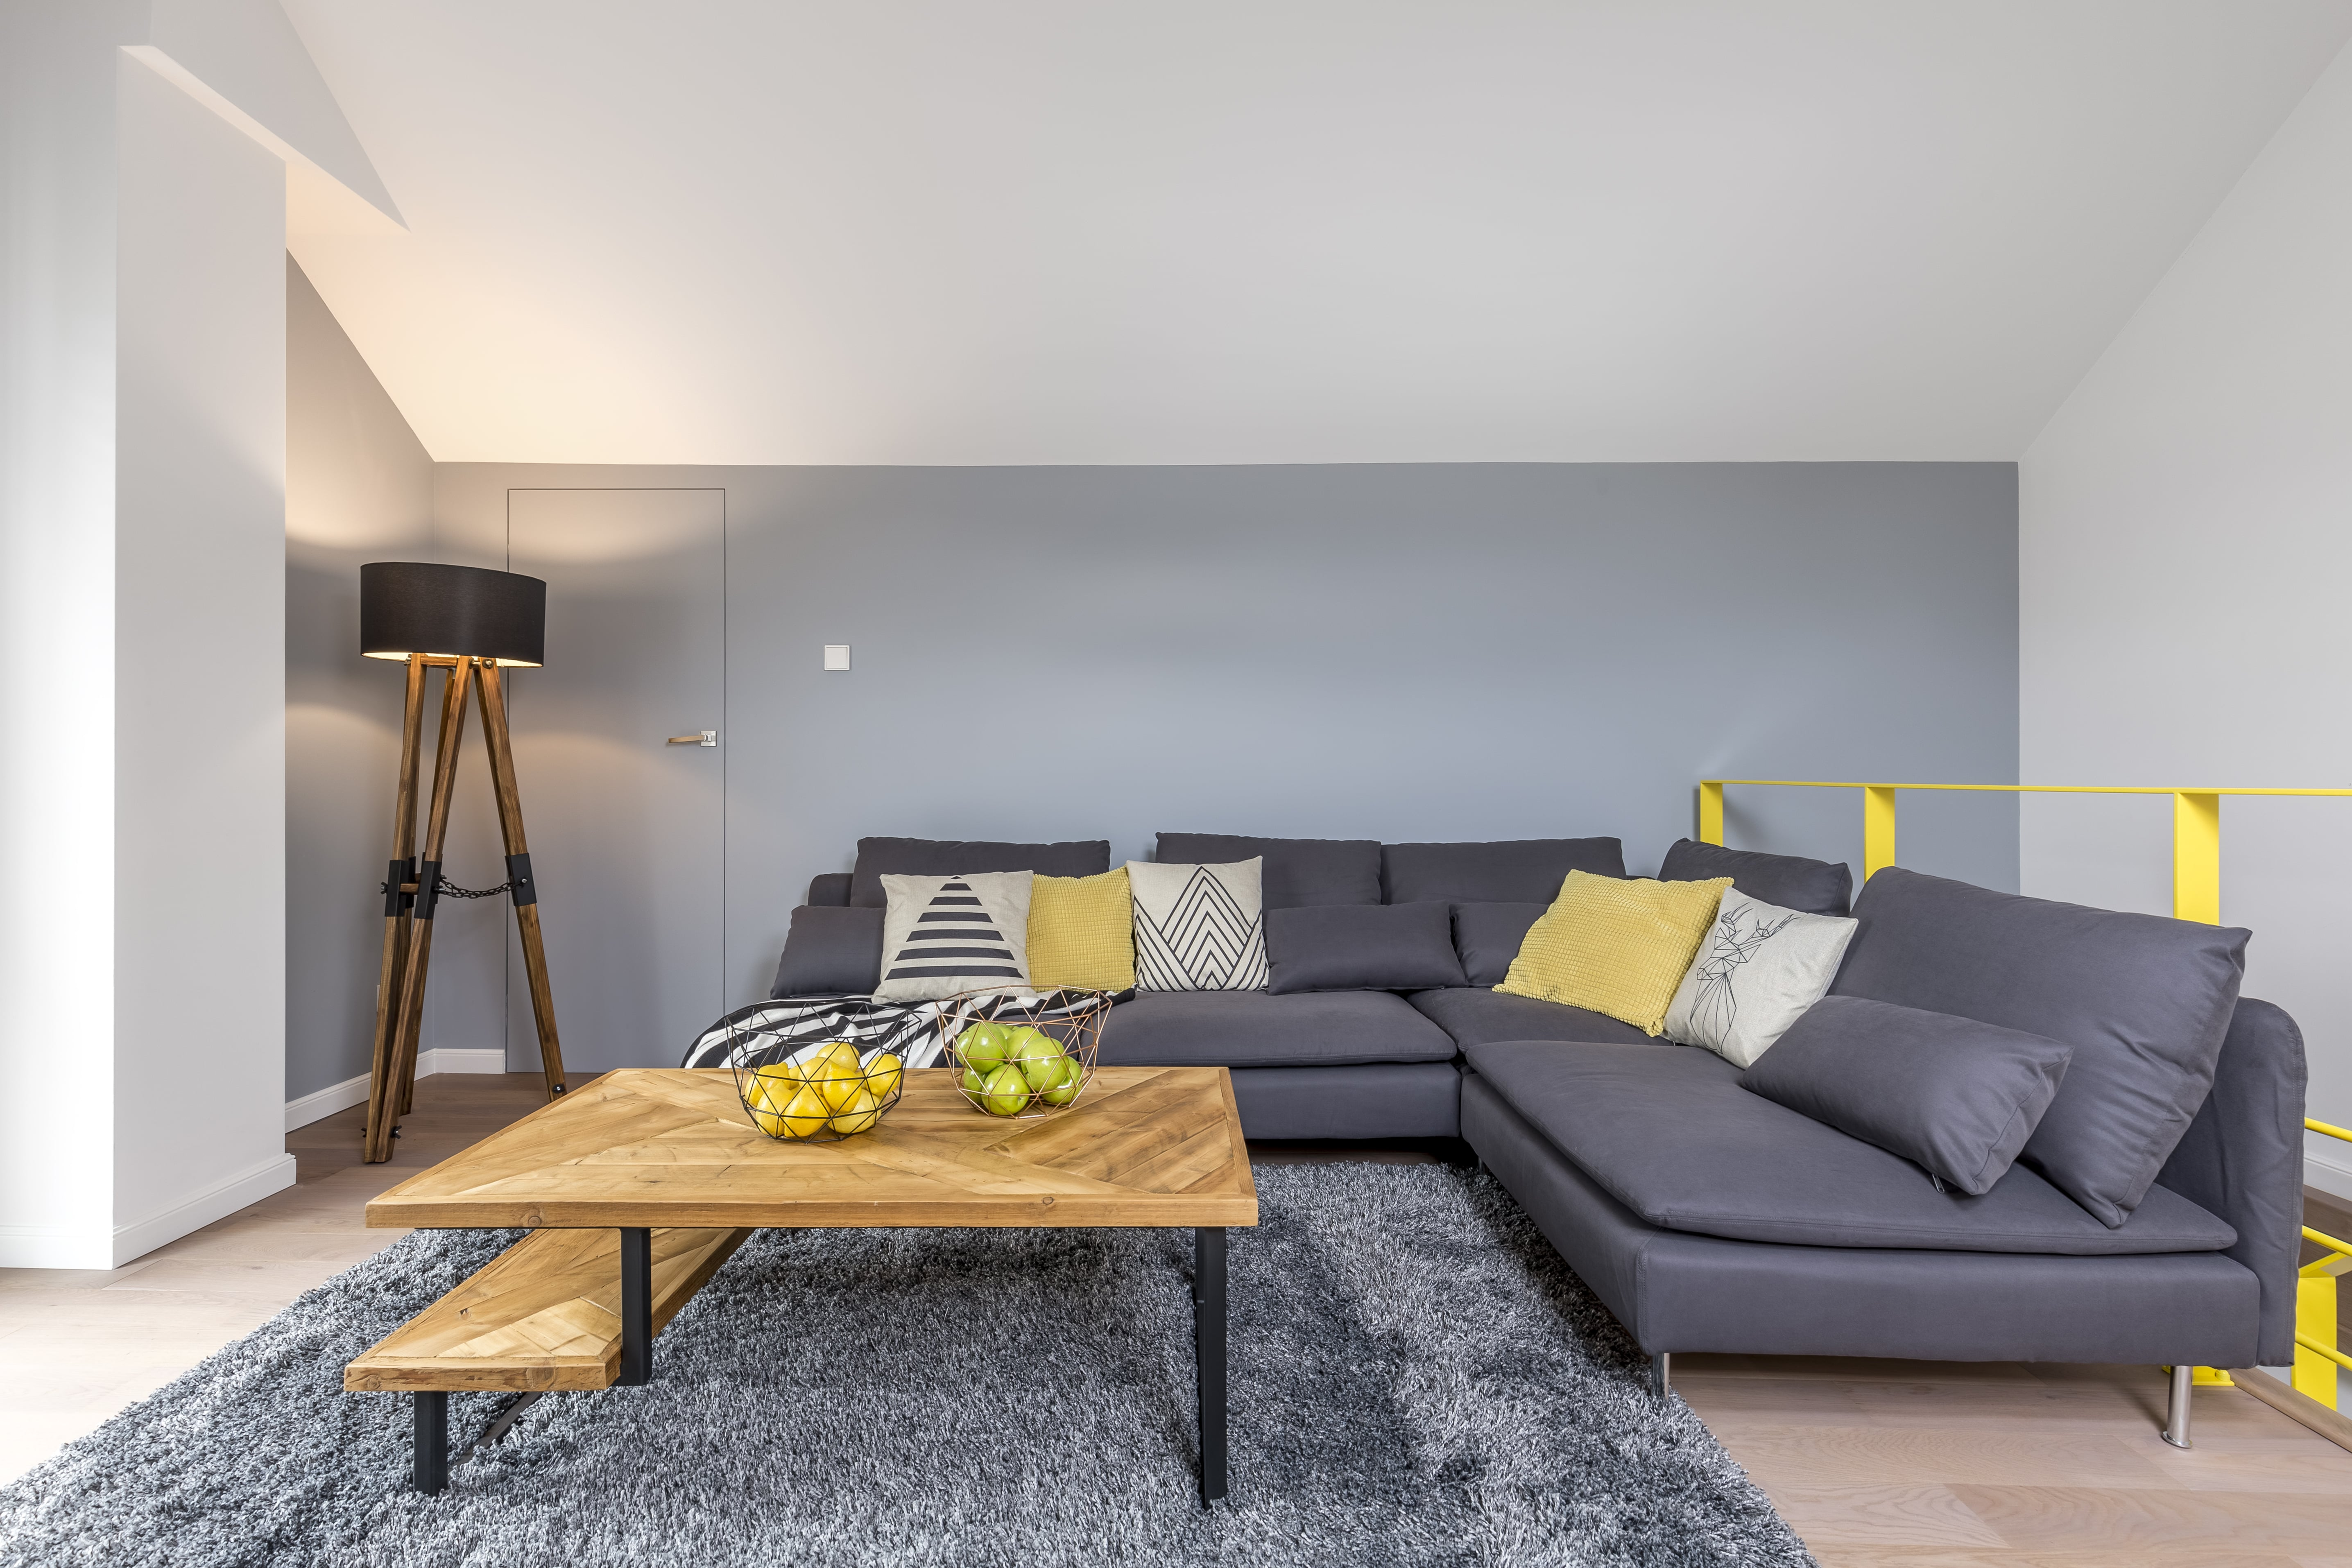 room-with-gray-corner-sofa-PD4AVSQ-min